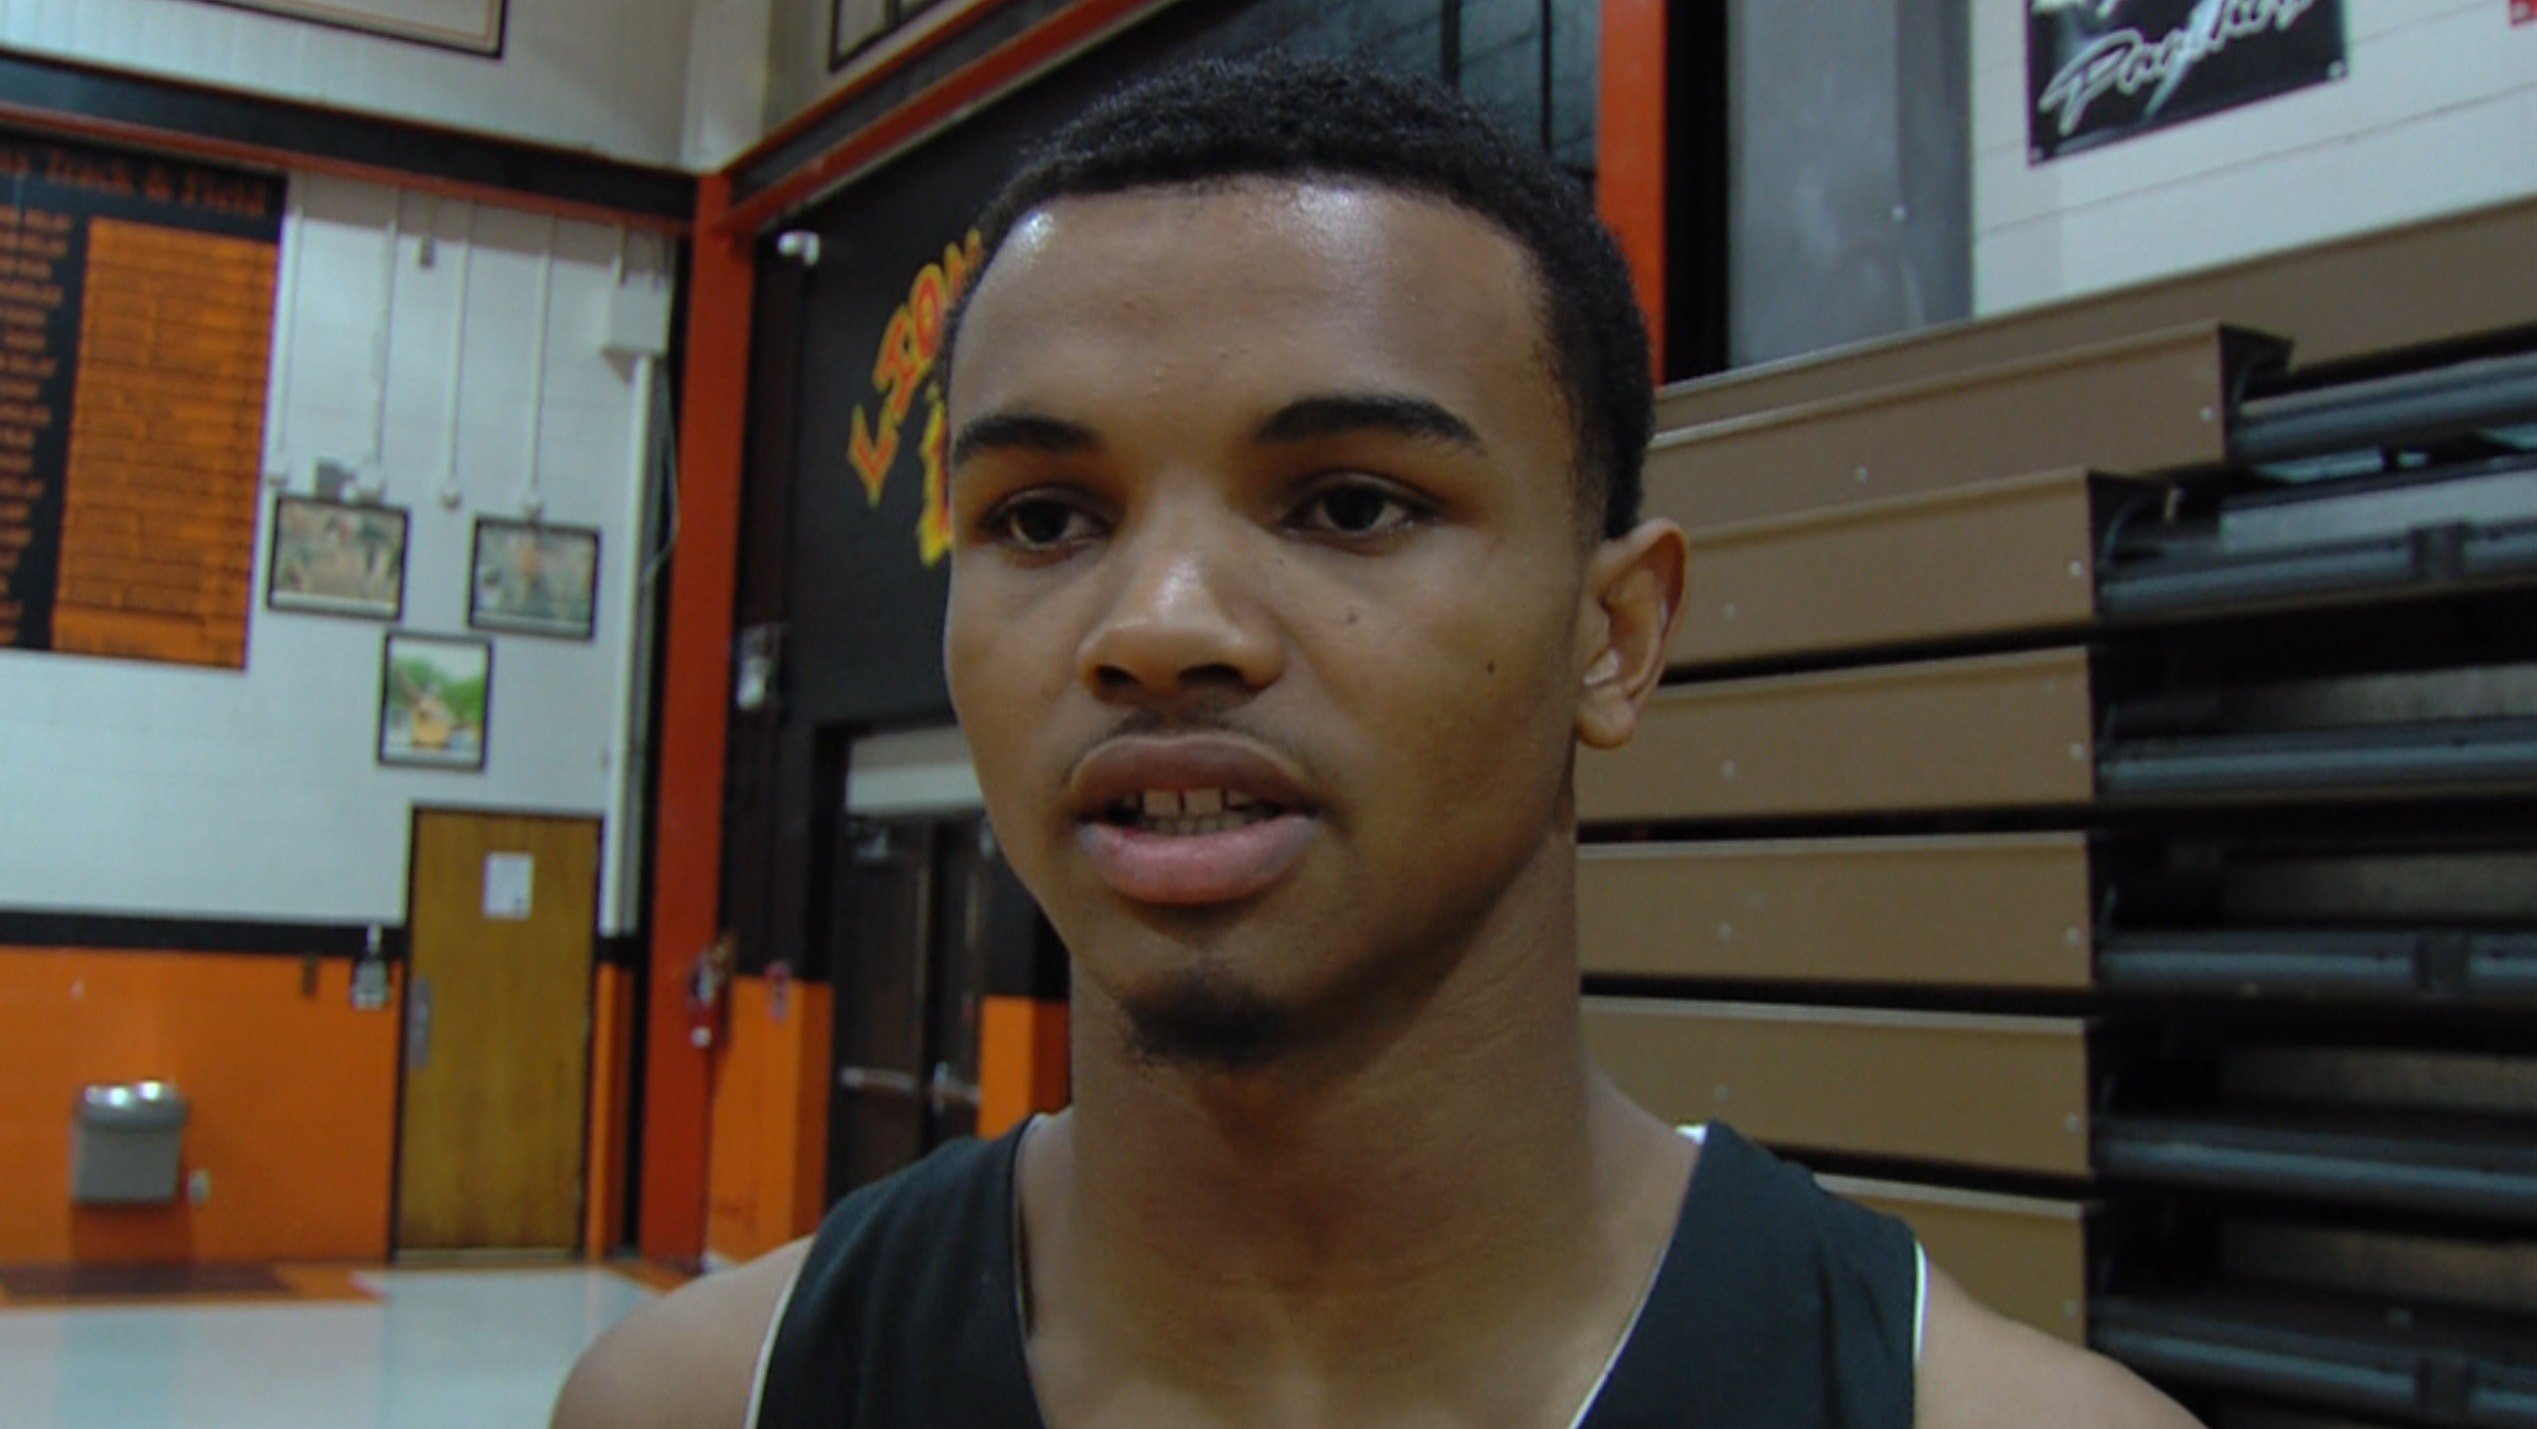 Lanphier senior guard Cardell McGee leads the Lions with 20.9 points per game to go with 7.0 rebounds, 5.4 assists and 3.3 steals per game.